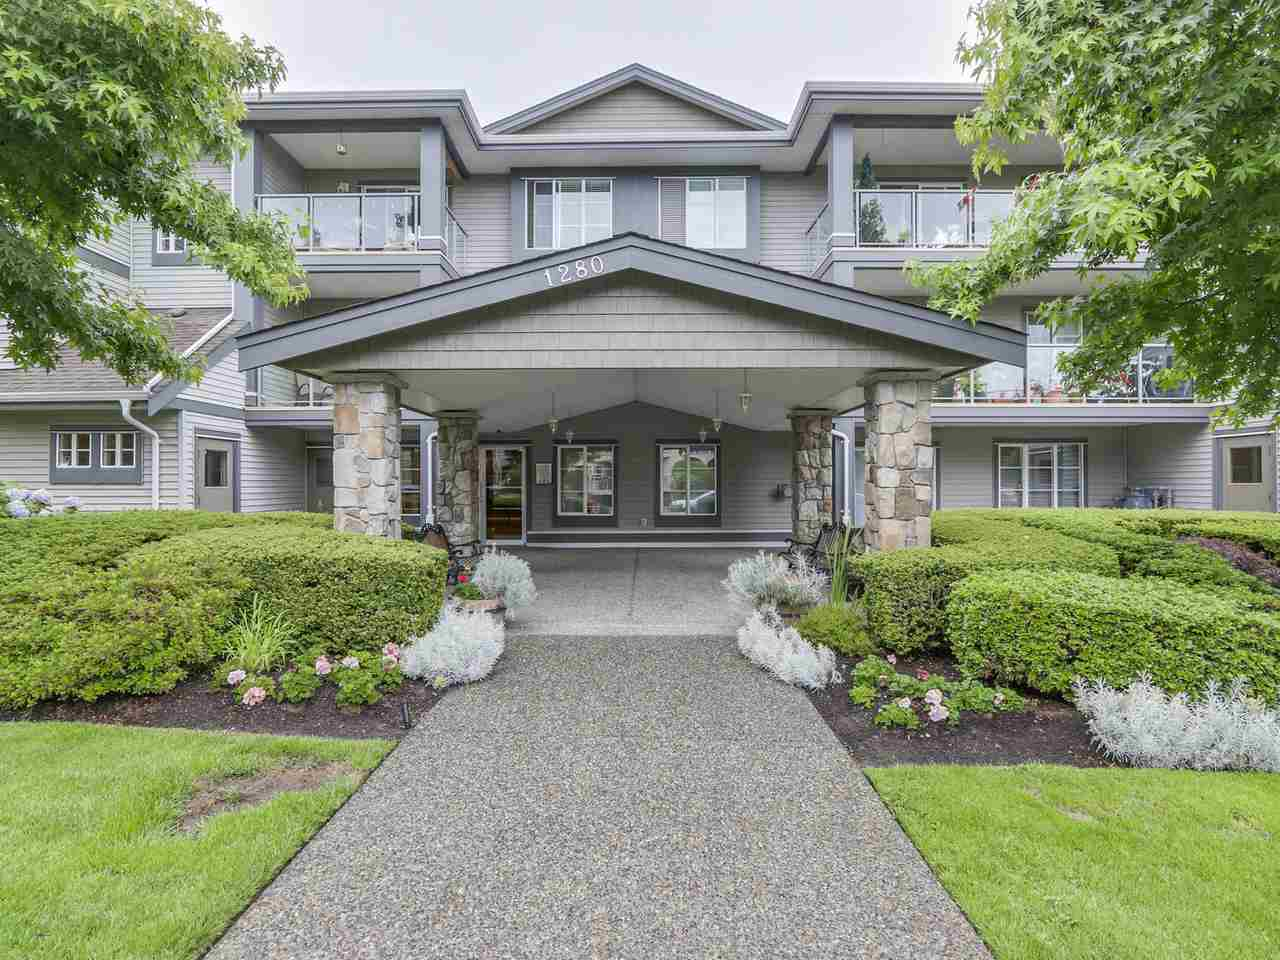 Main Photo: 205 1280 MERKLIN Street: White Rock Condo for sale (South Surrey White Rock)  : MLS® # R2088301